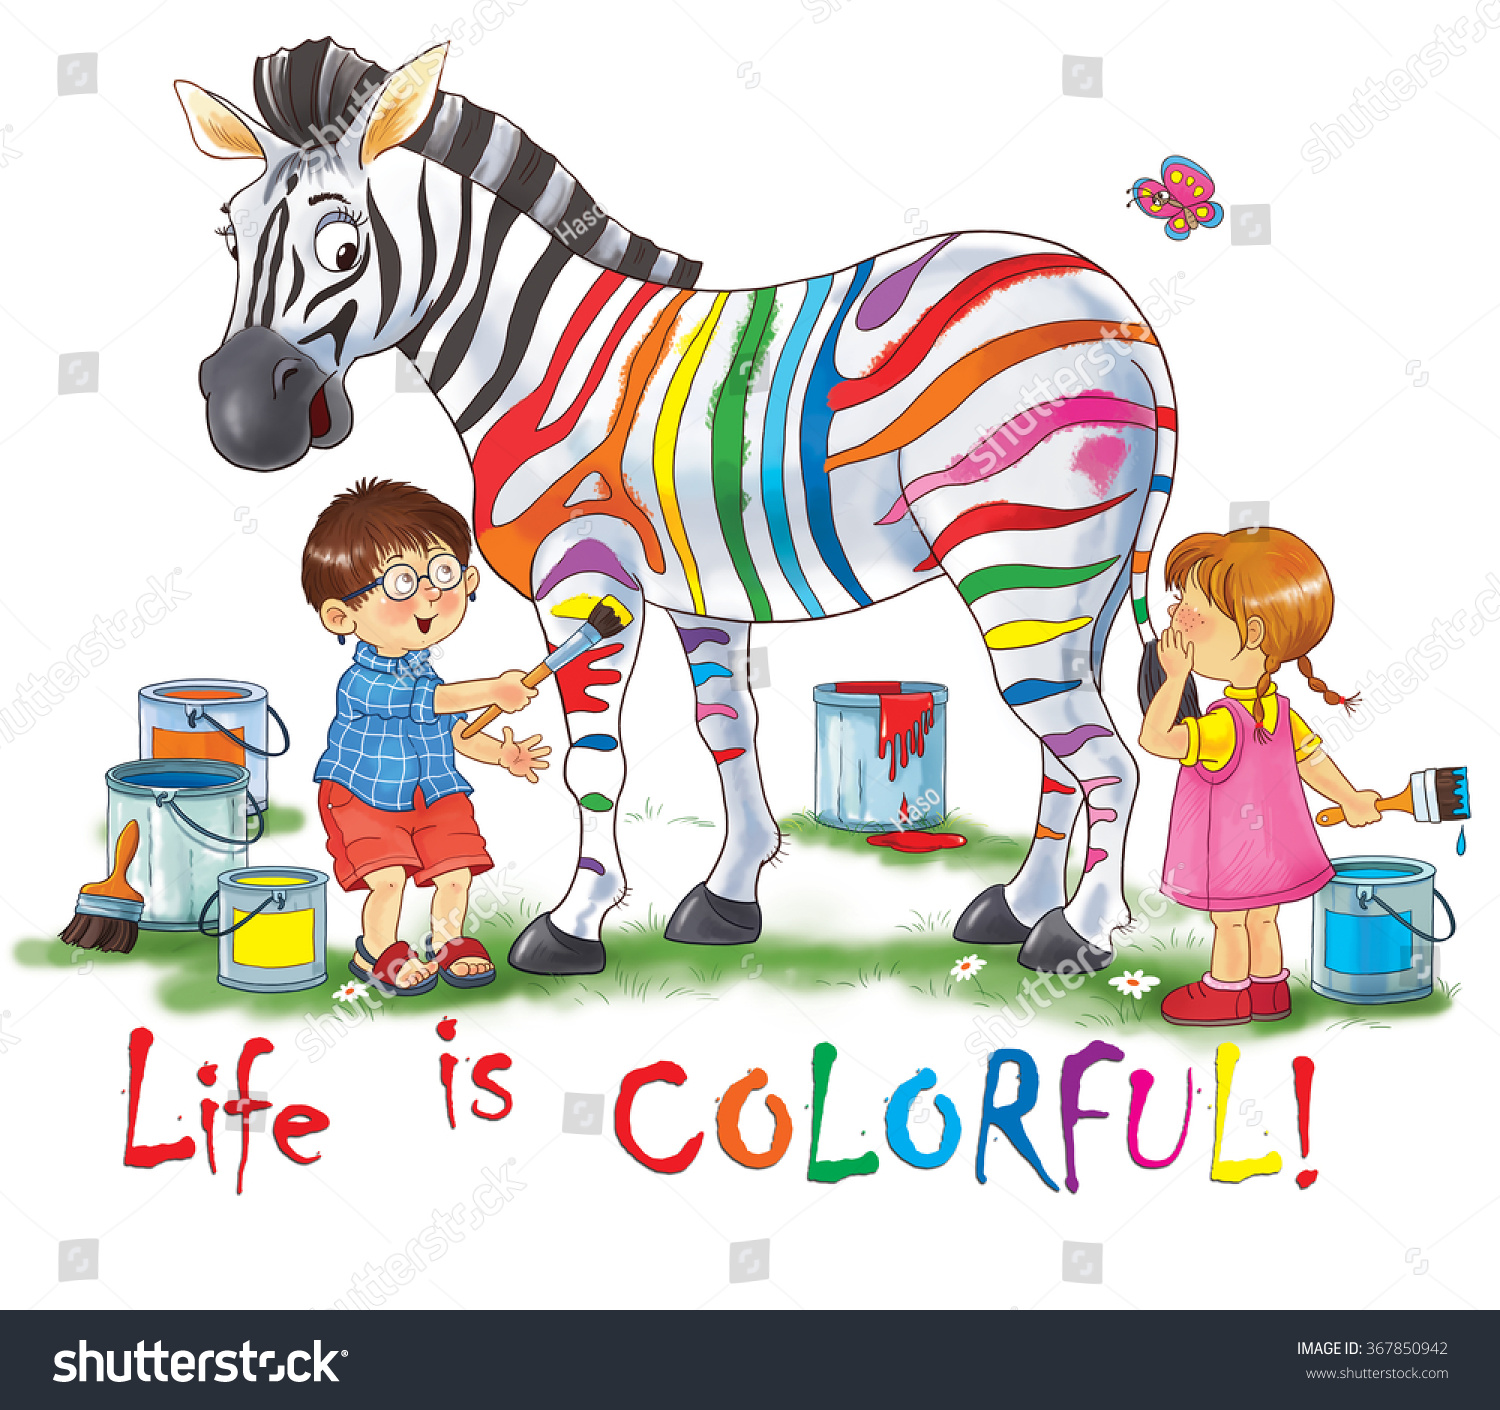 zoo animals africa funny zebra cute stock illustration 367850942